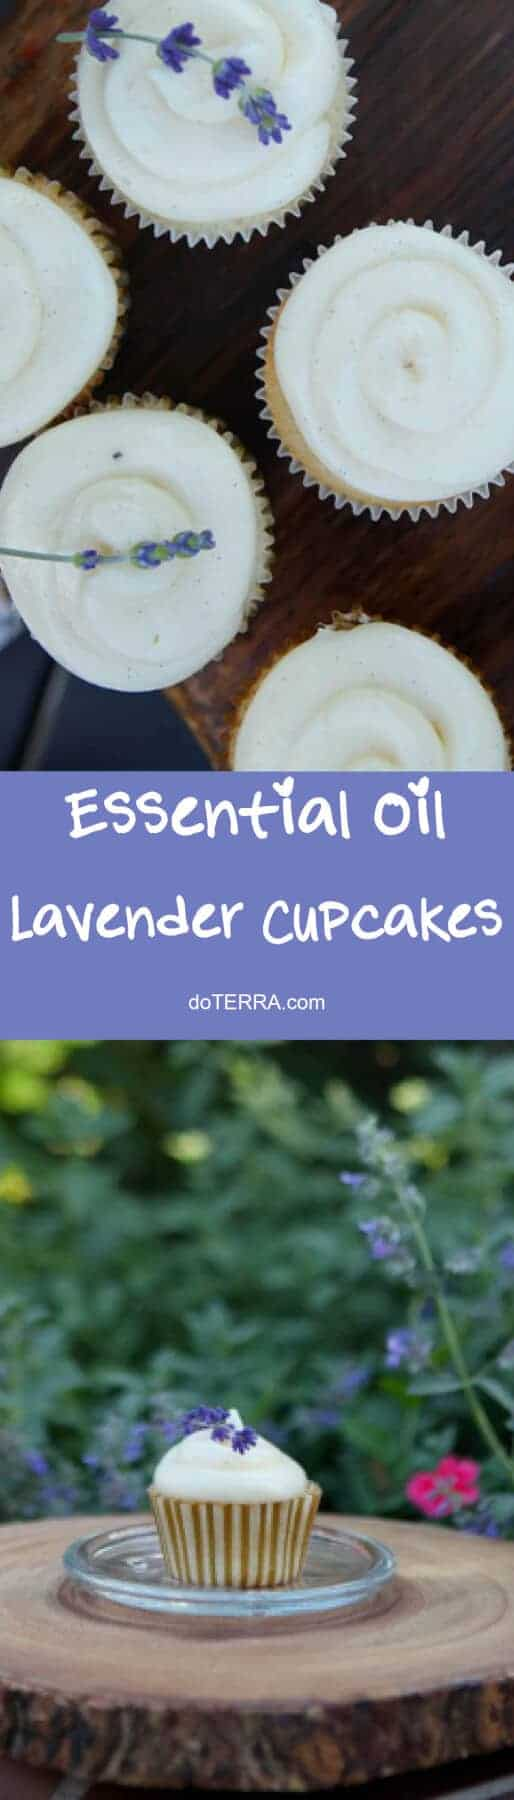 doTERRA Lavender Cupcakes with Lavender Cream Cheese Frosting Recipe Lavender Essential Oil Uses